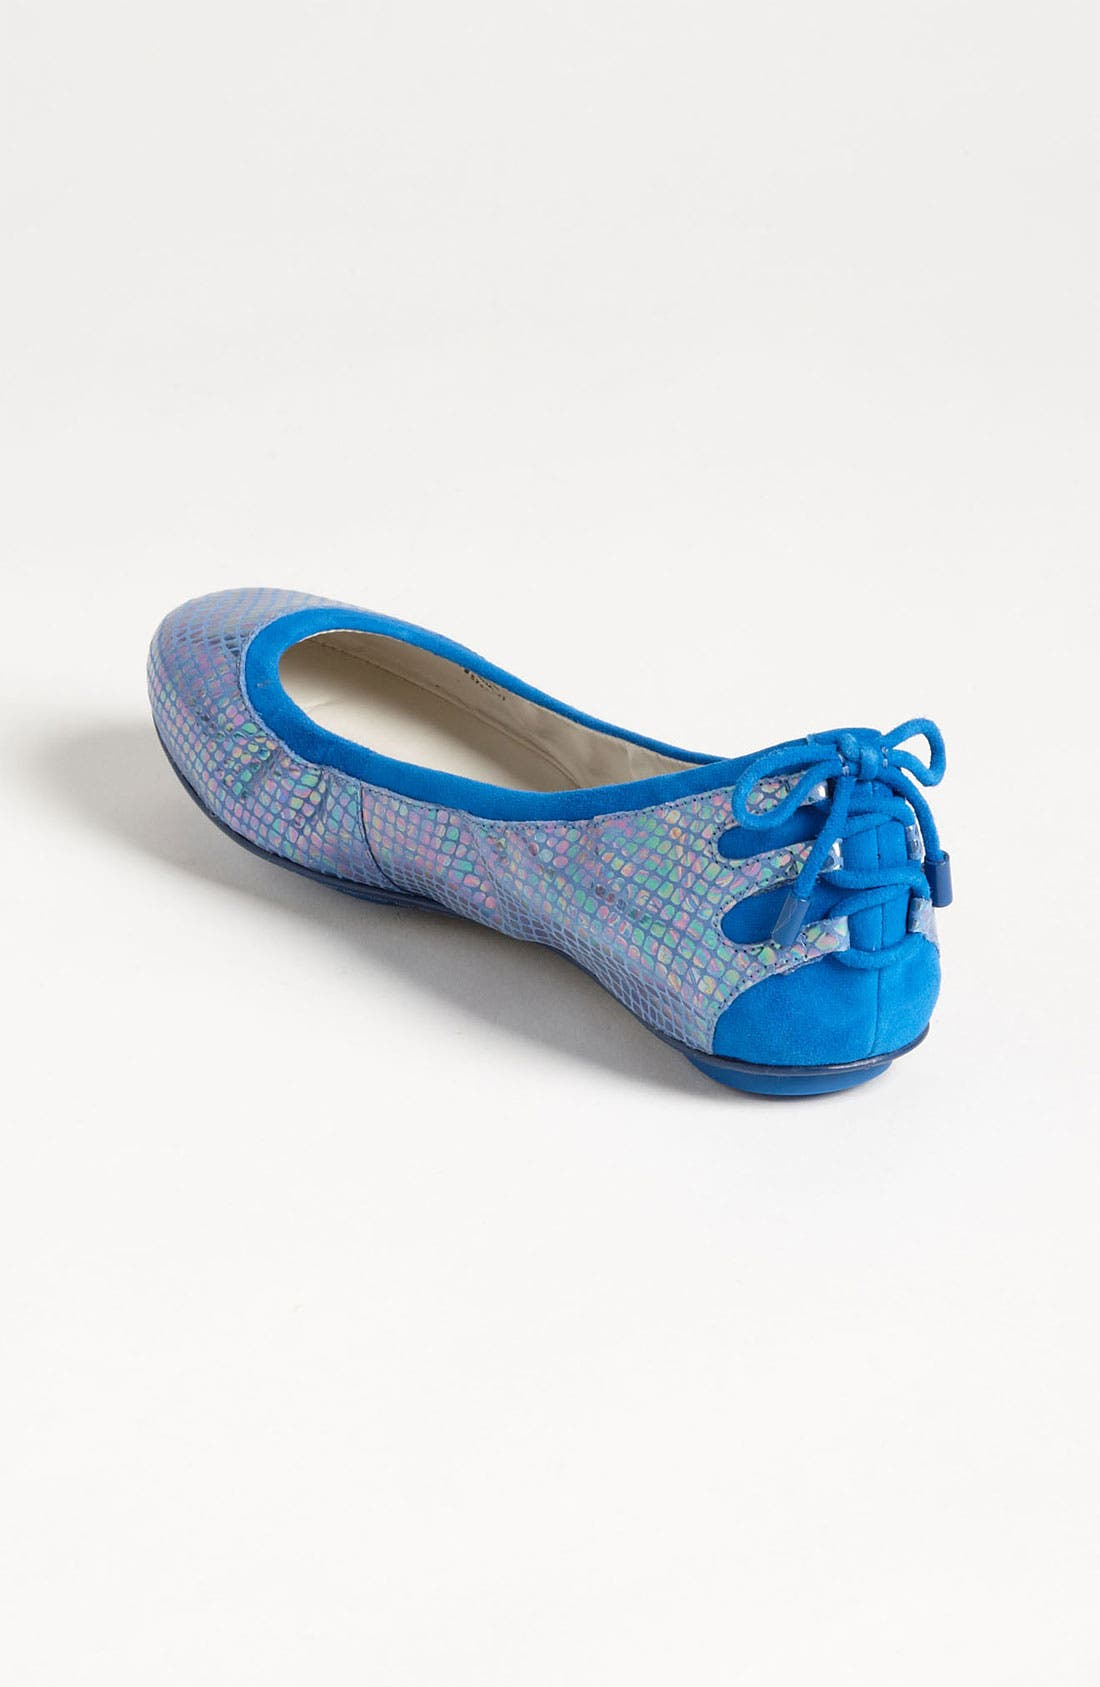 ,                             Maria Sharapova by Cole Haan 'Air Bacara' Flat,                             Alternate thumbnail 63, color,                             400